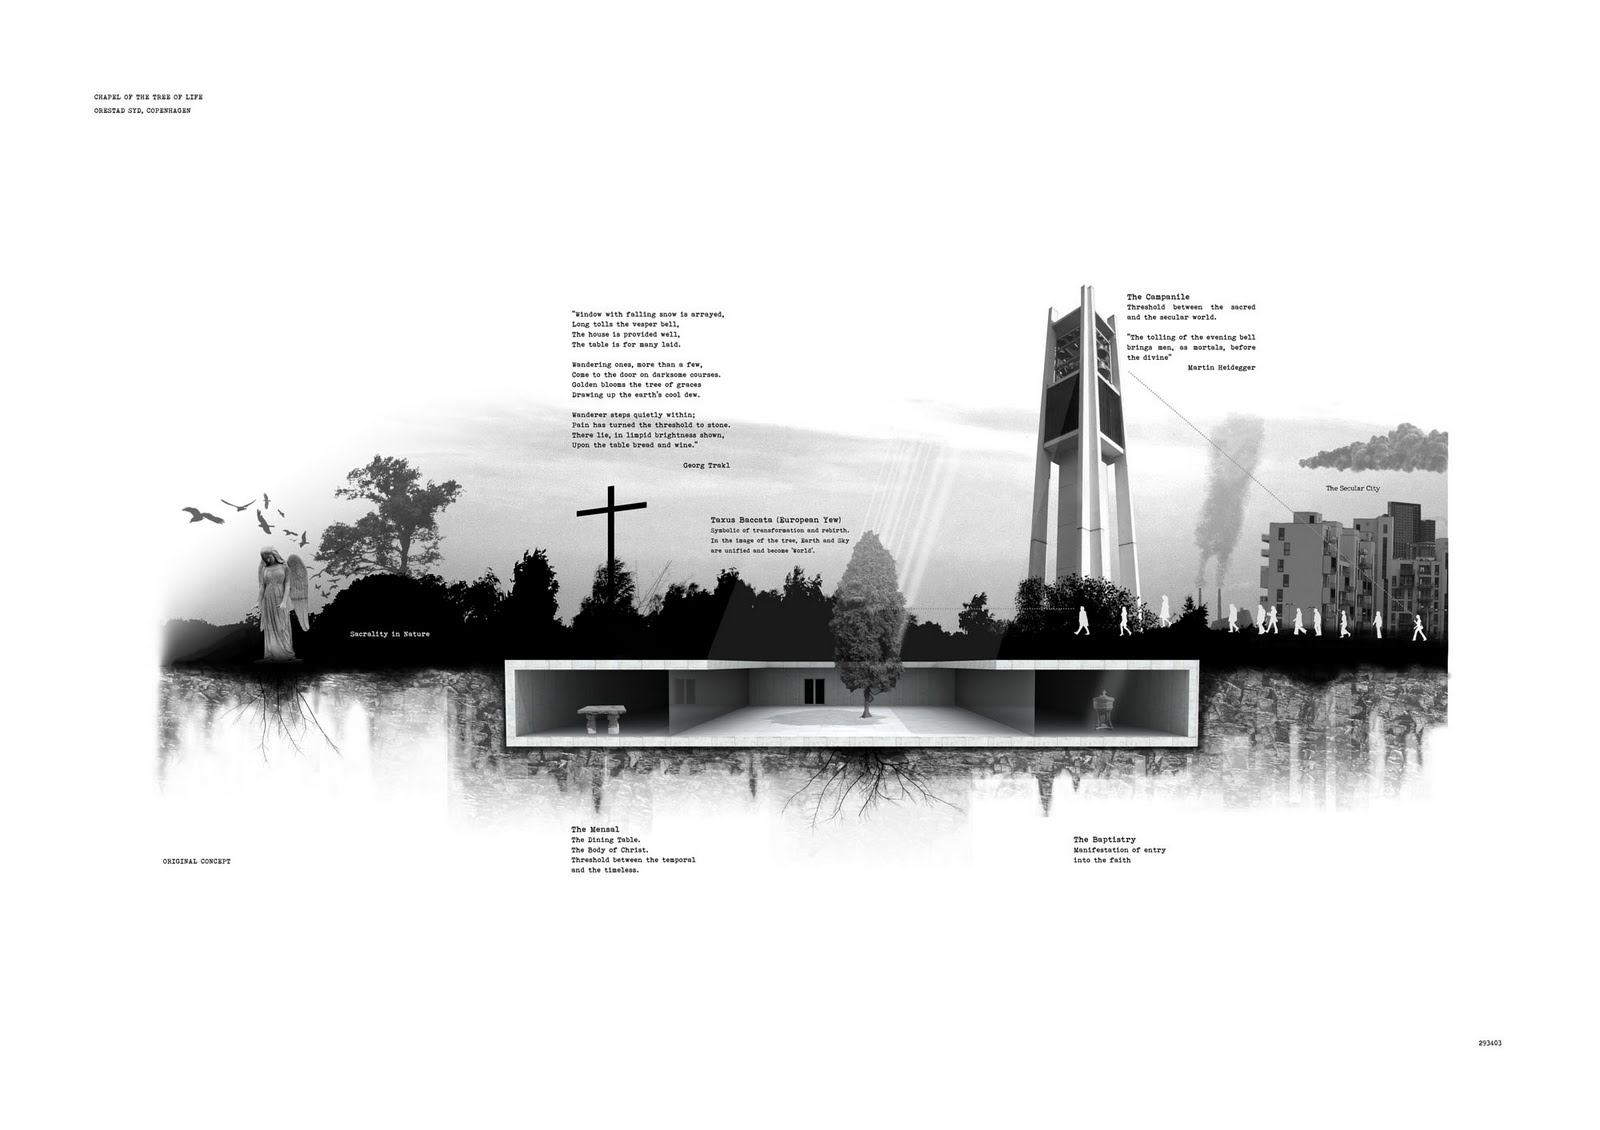 architectural thesis on church